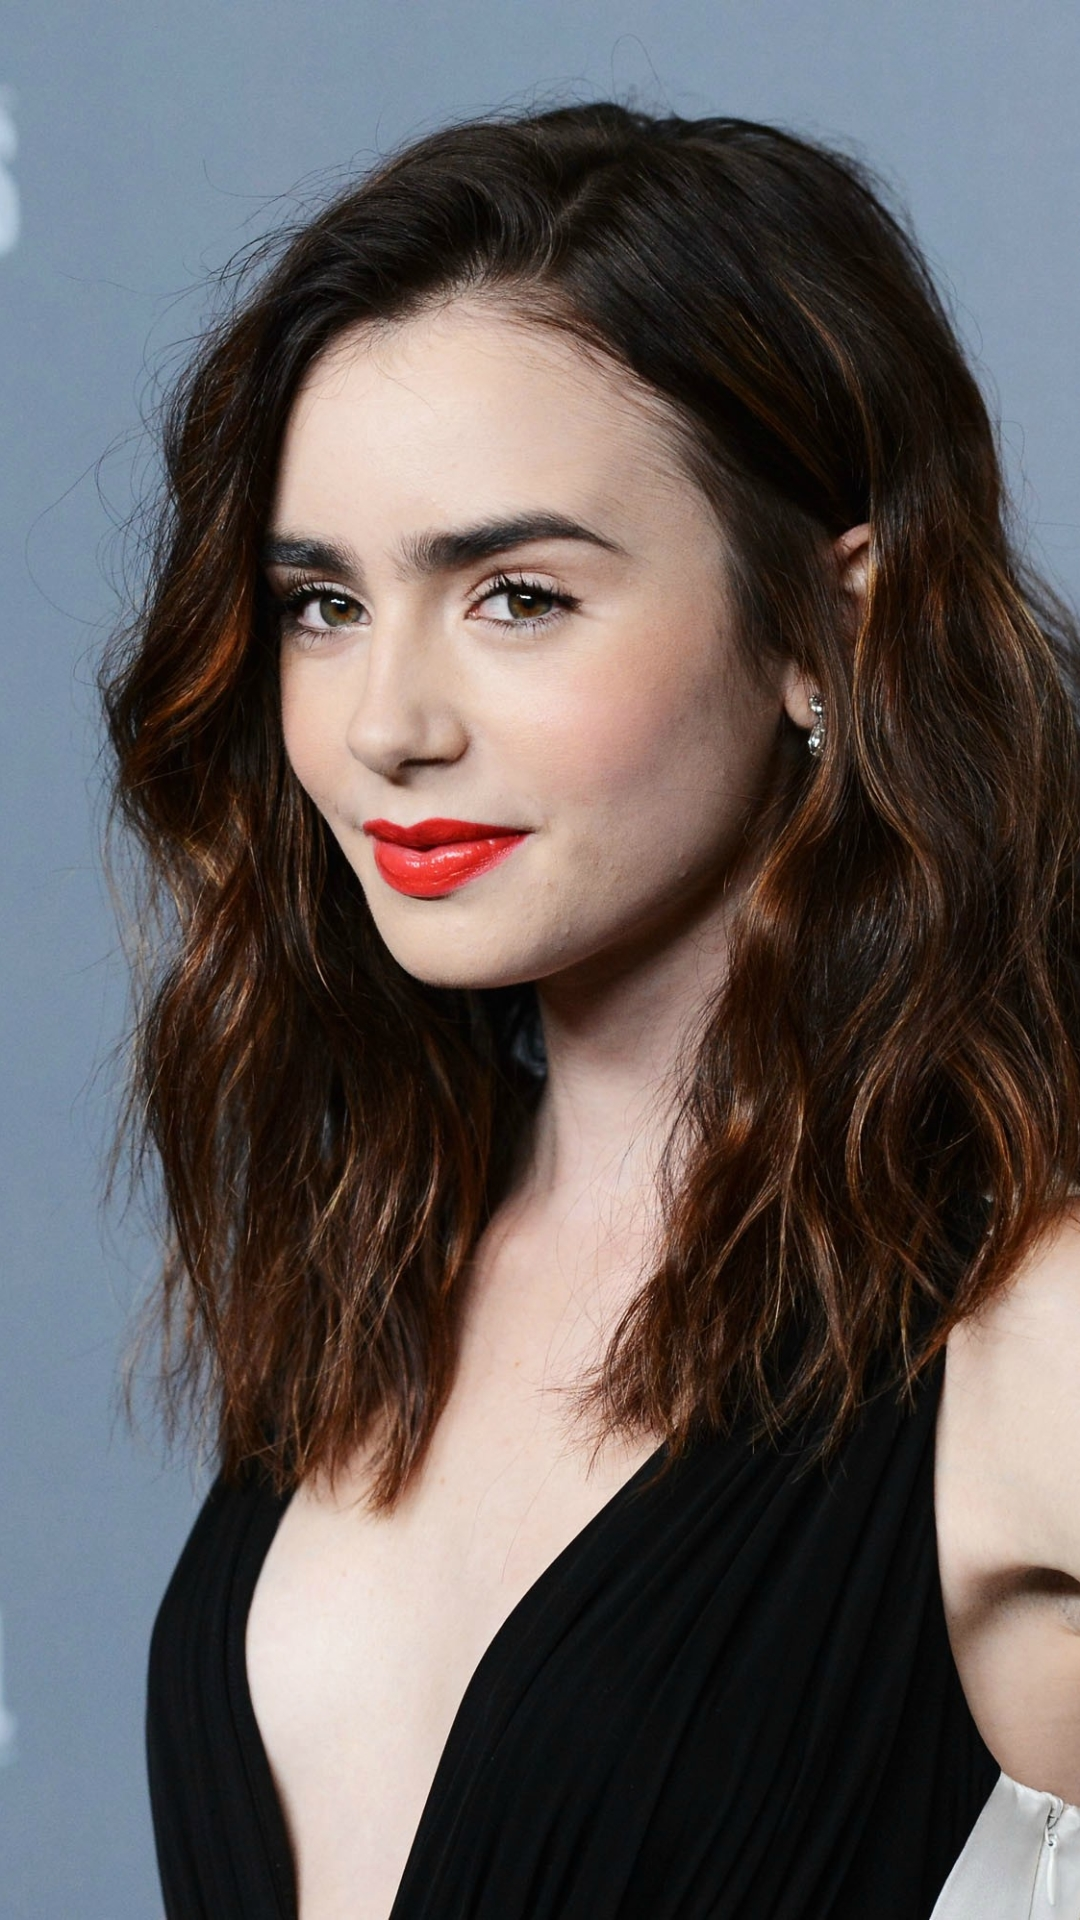 celebrity/lily collins (1080x1920) wallpaper id: 694972 - mobile abyss